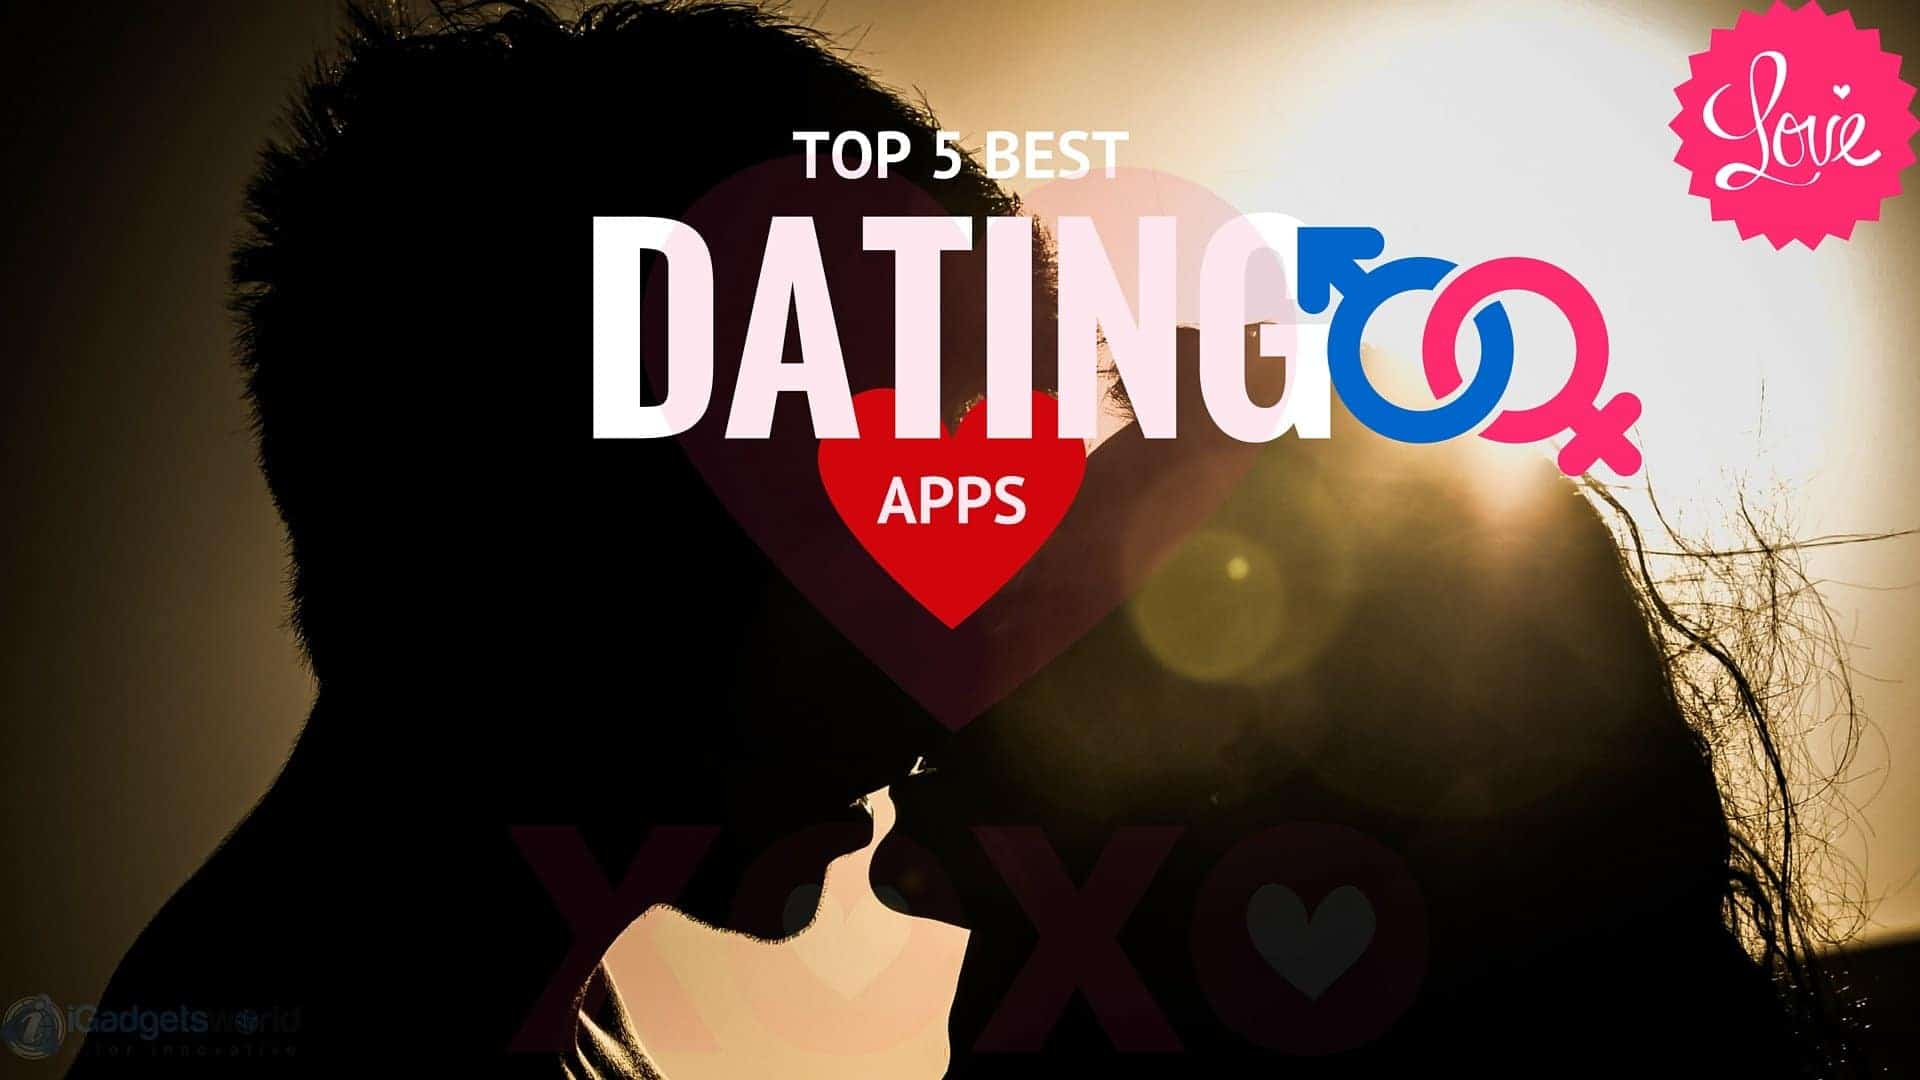 free android dating apps india Tinder is a free dating app which first burst into limelight due next on our list of best dating smartphone apps in india is trulymadly smartprix blog january.